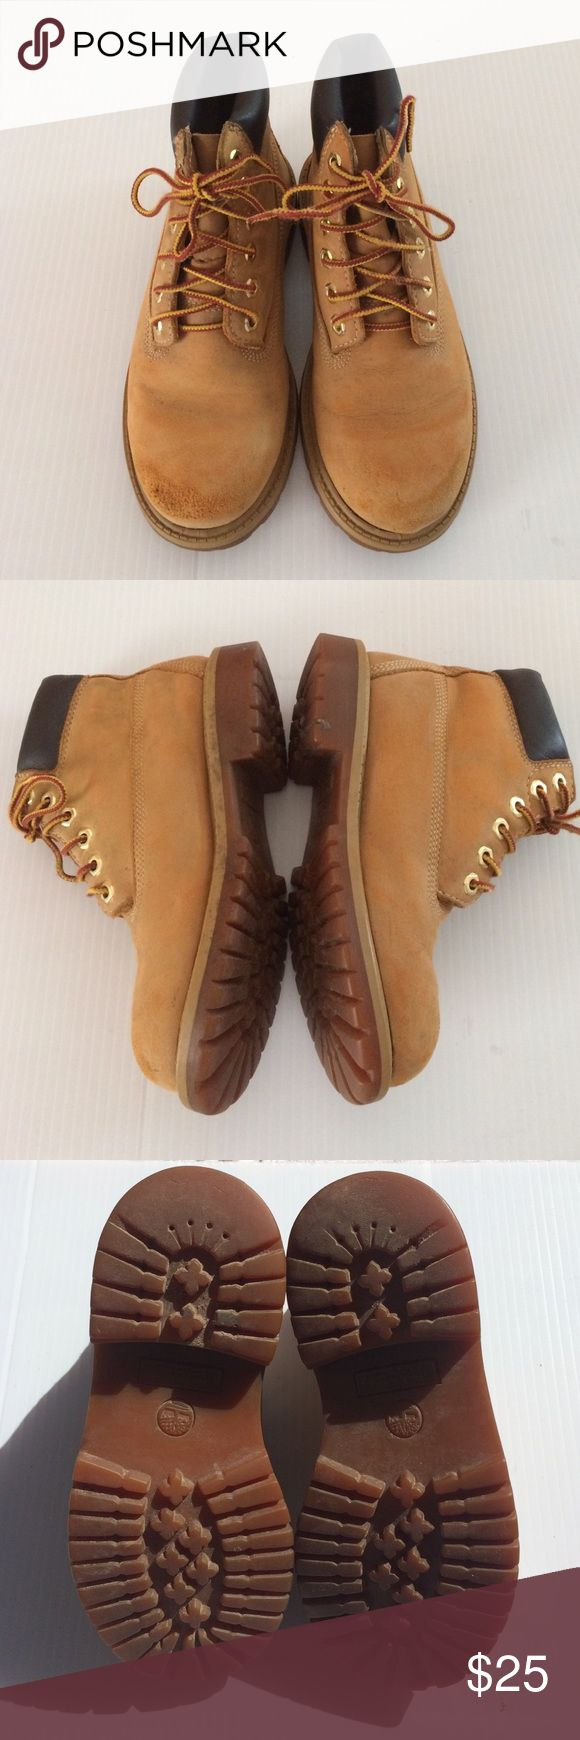 Timberlands Boys Size 13.5 US Preowned Boys Timberlands boots size 13.5 they have wear but still plenty of life on them. On front of the shoes have wear Be free to make me an offer thanks Timberland Shoes Boots